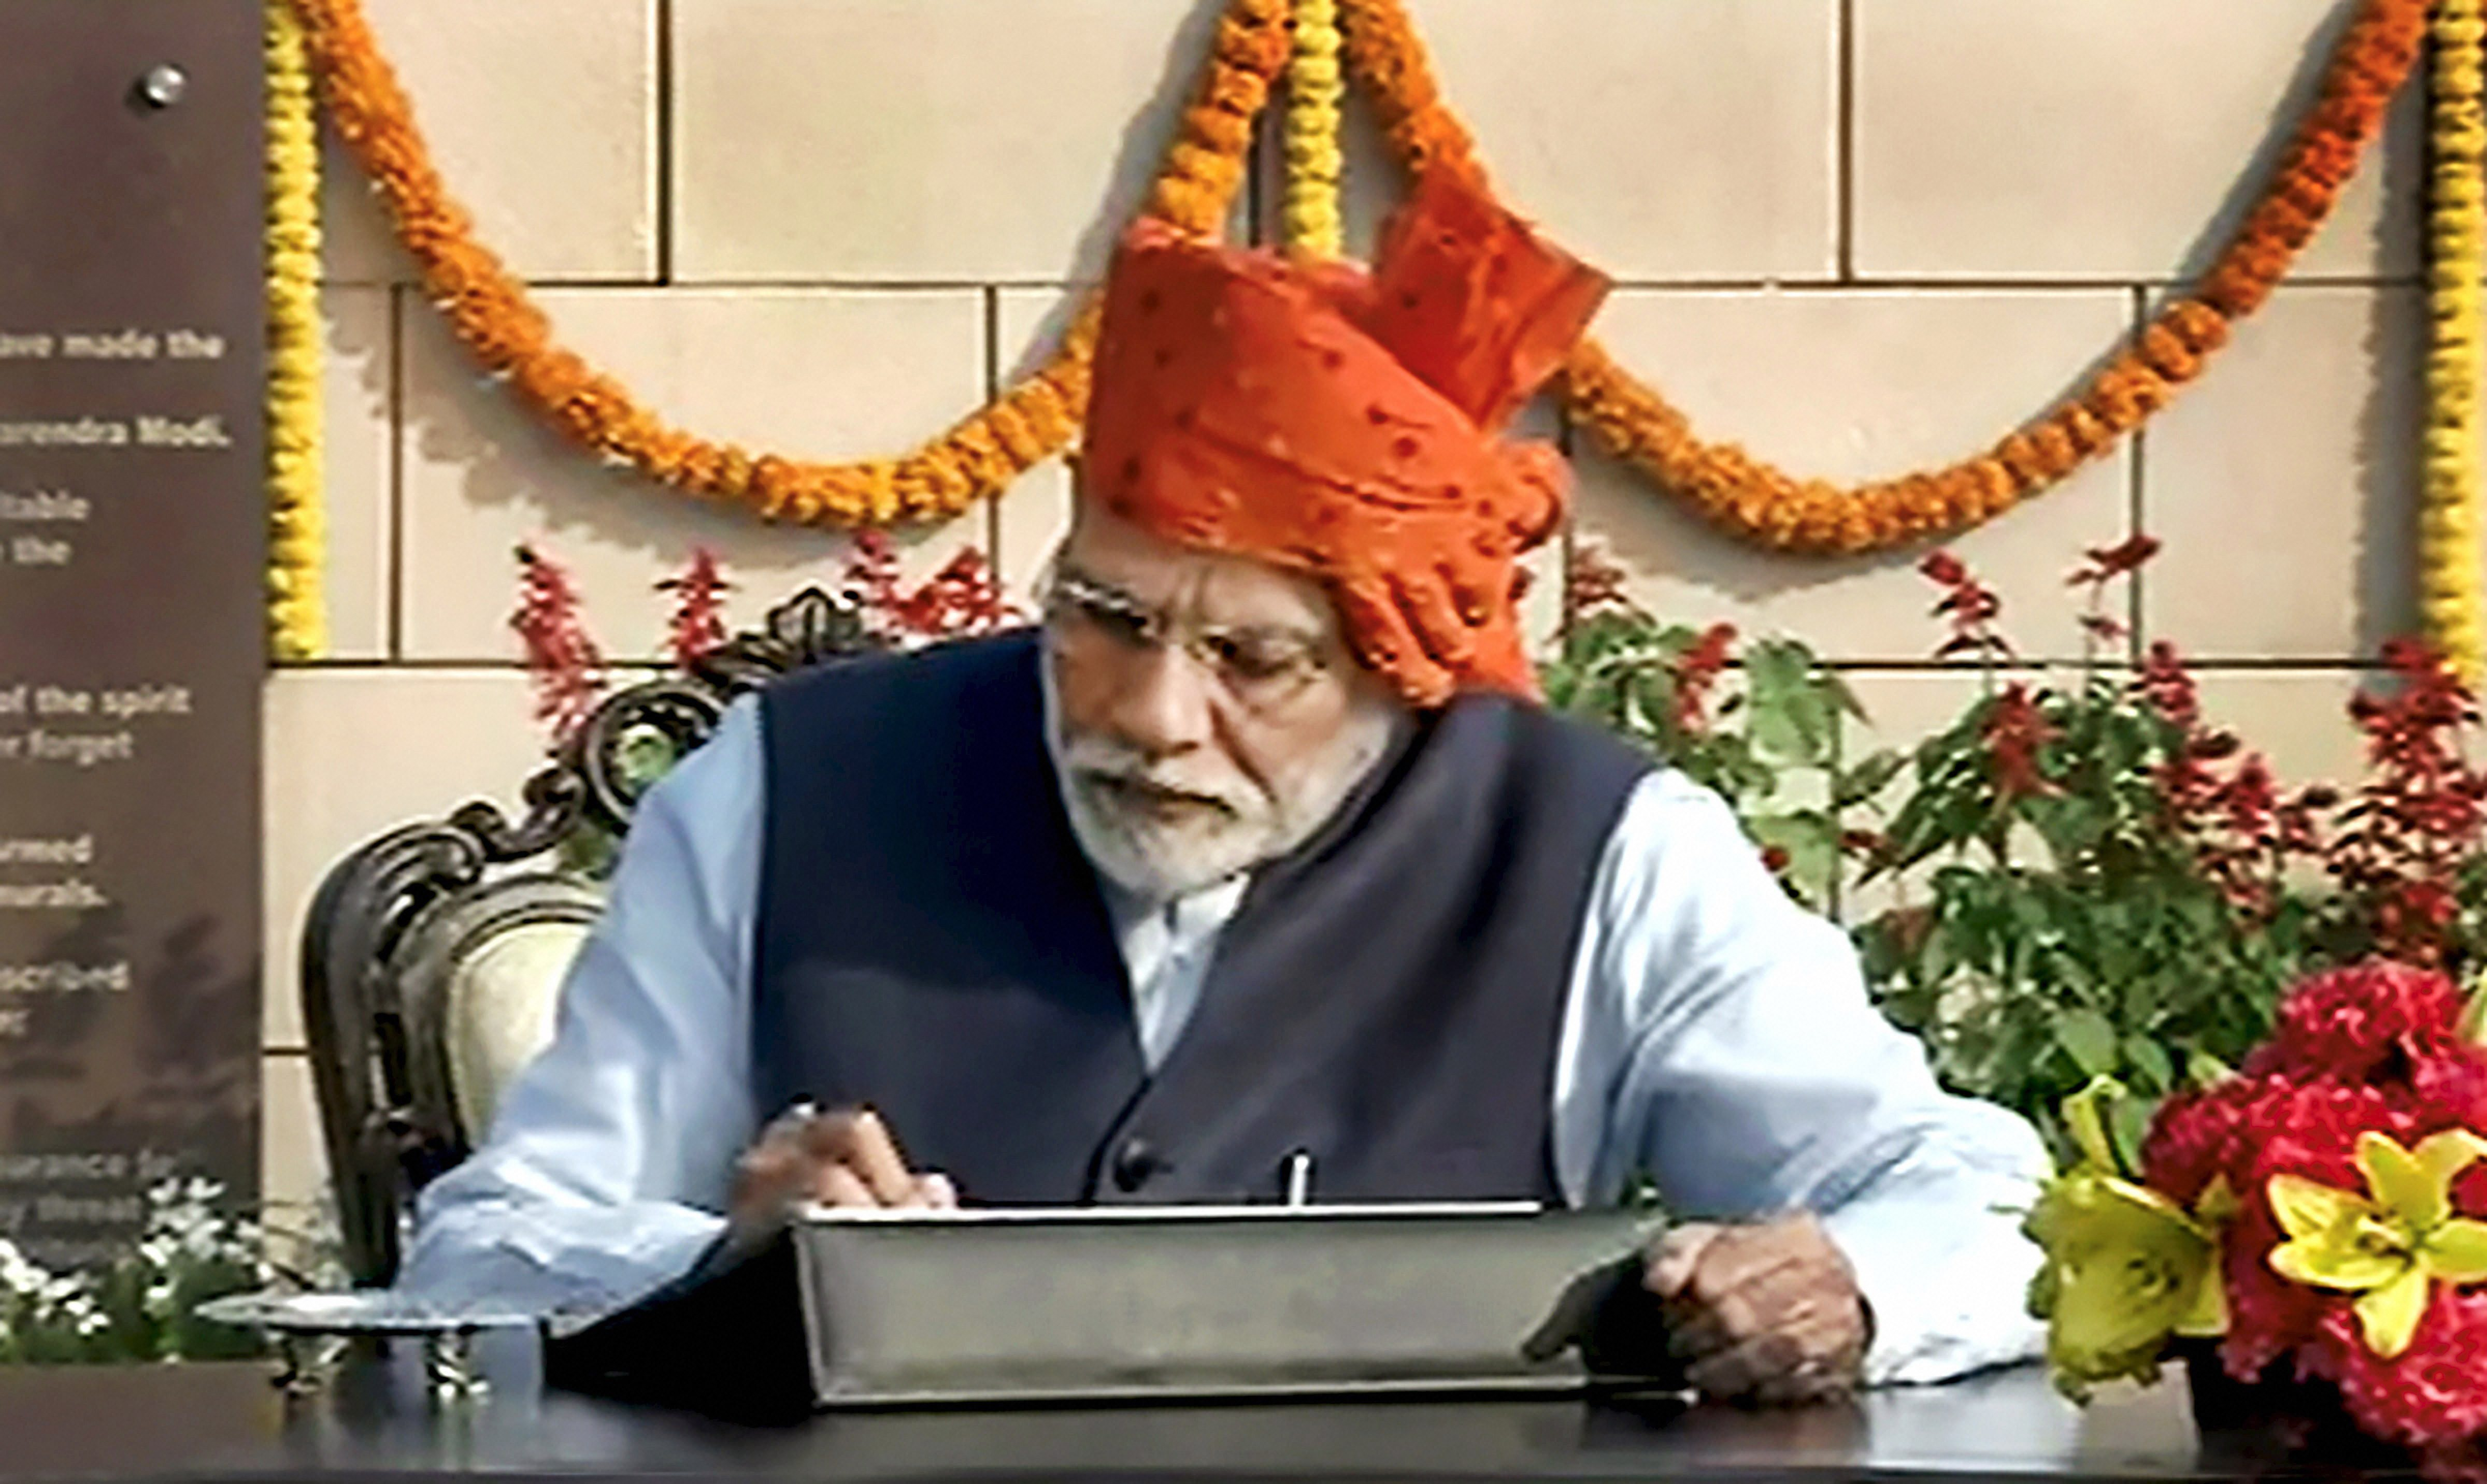 Prime Minister Narendra Modi signs the visitor's book after paying tribute at the National War Memorial near India Gate on the occasion of the 71st Republic Day, in New Delhi, Sunday, January 26, 2019.